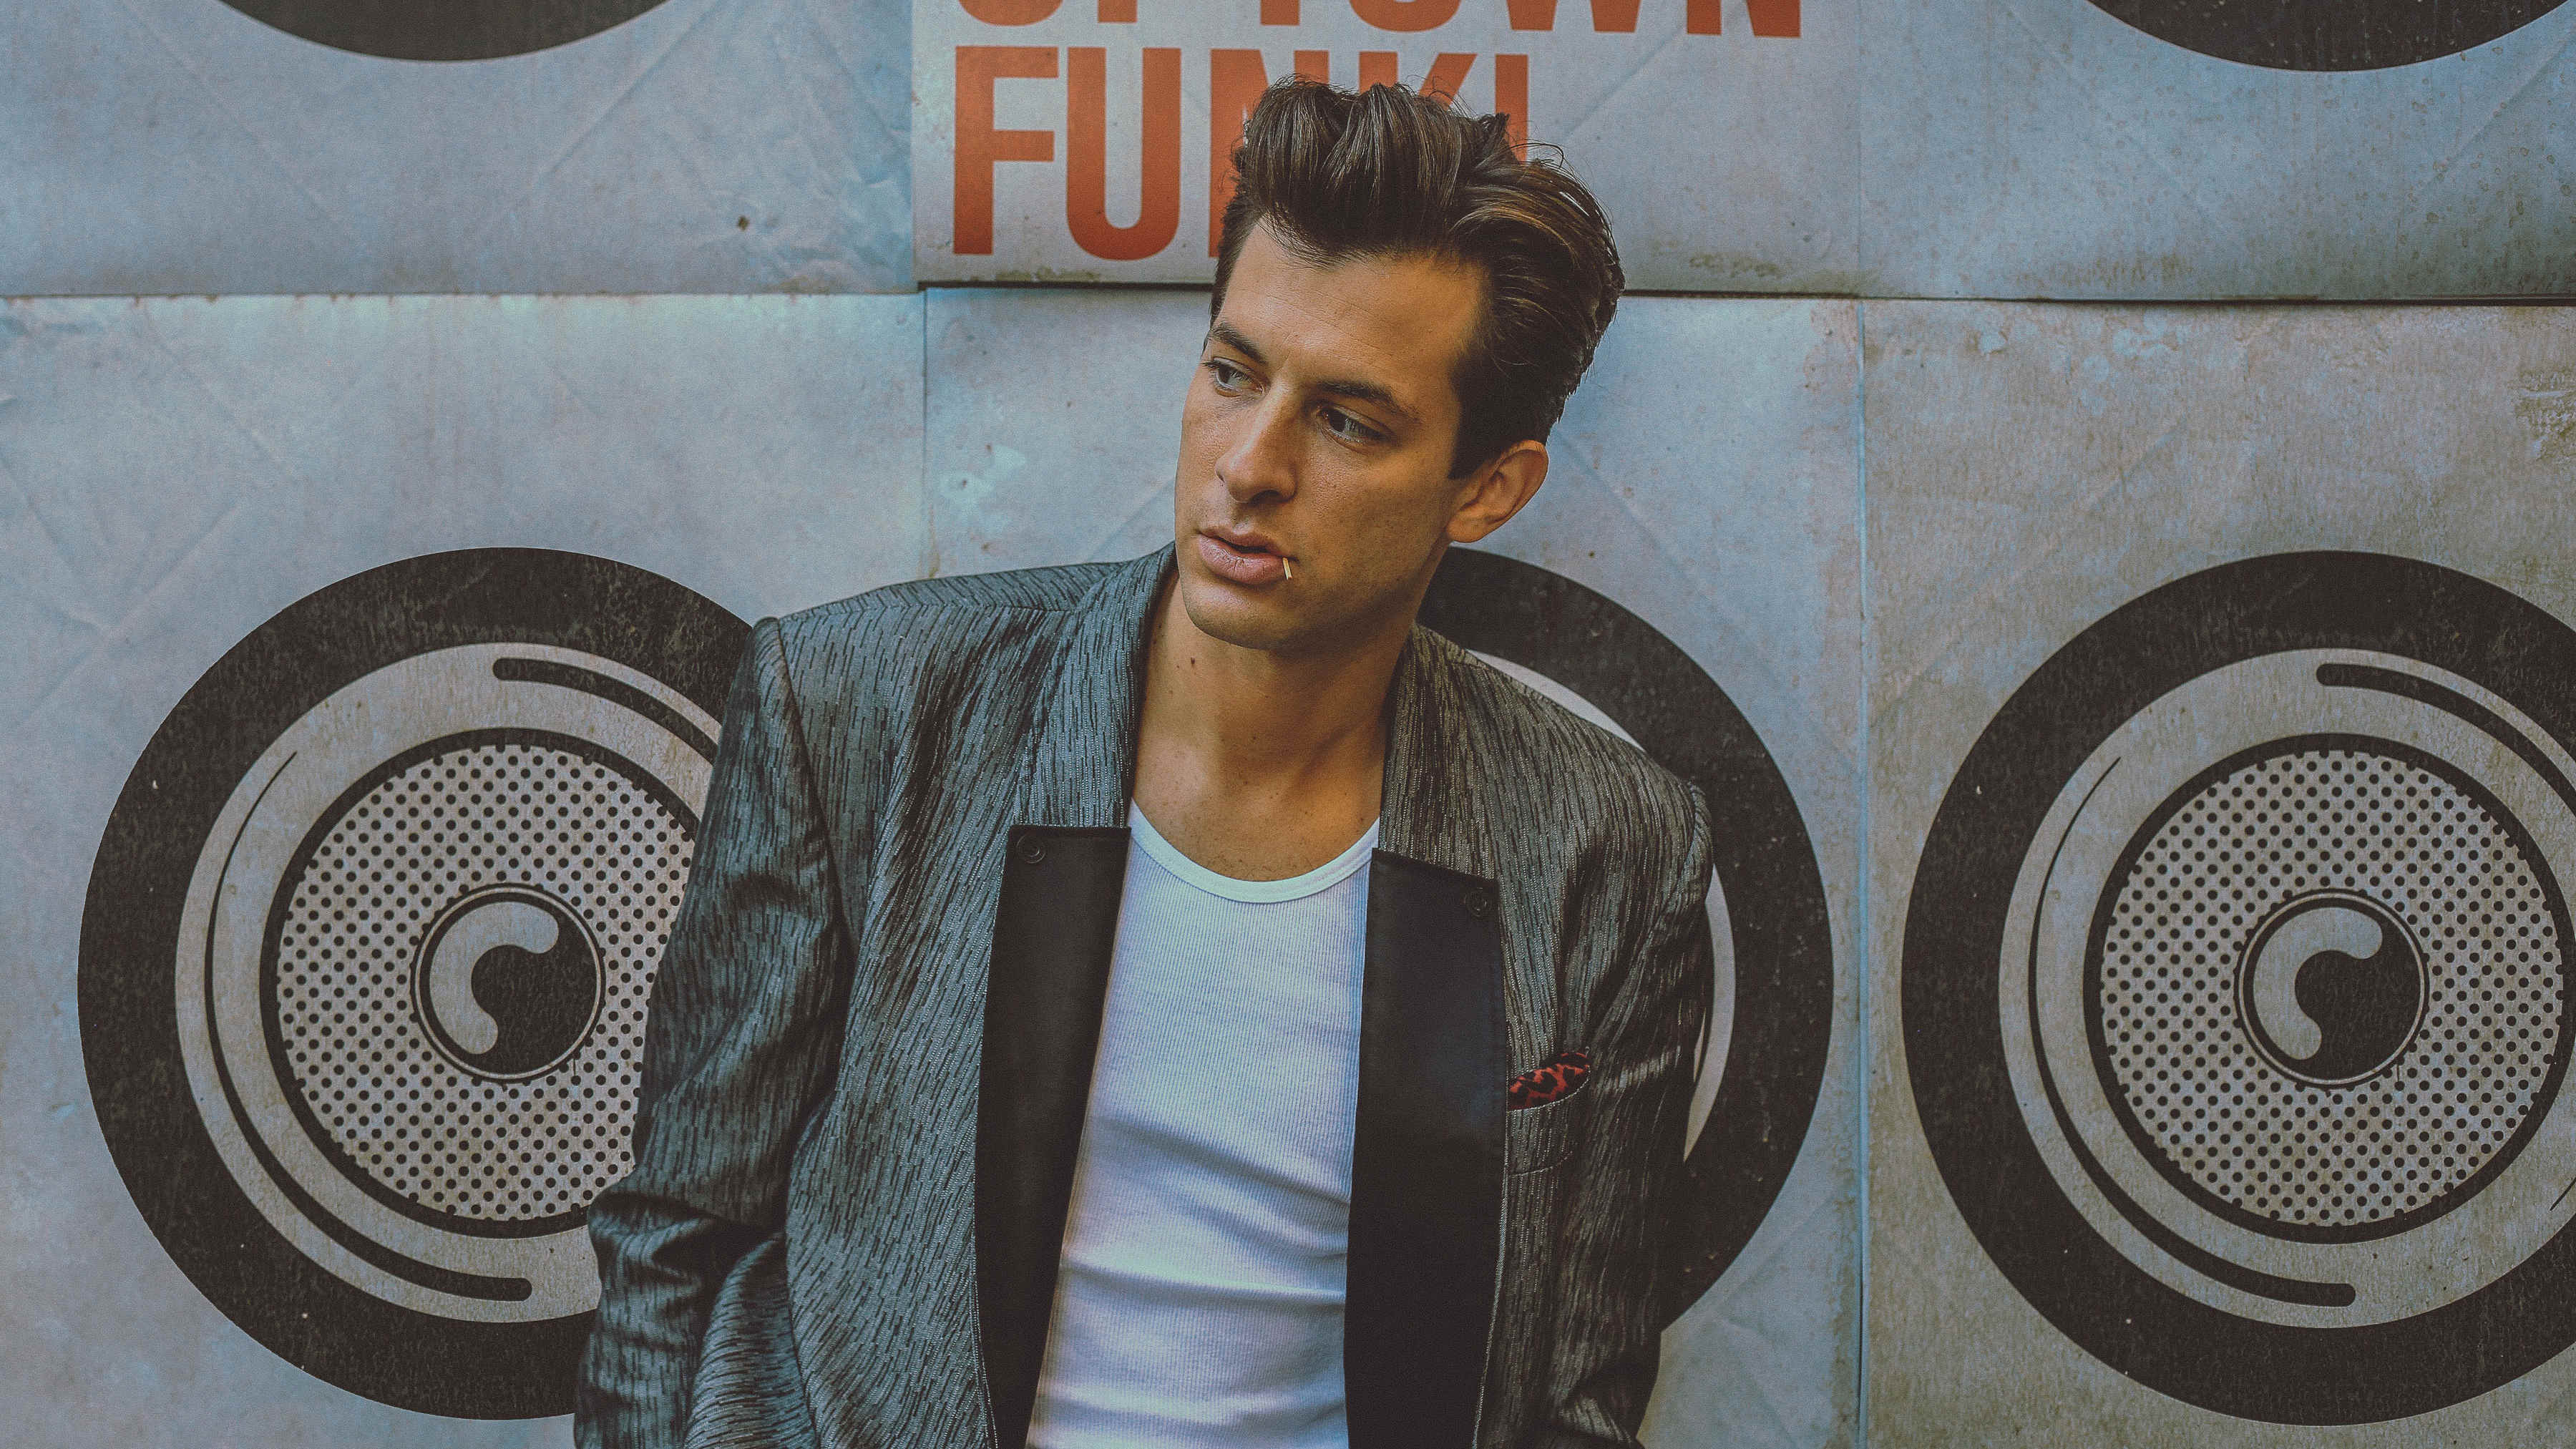 Mark Ronson, Uptown Funk press still, by Florent Dechard (3600x2025)